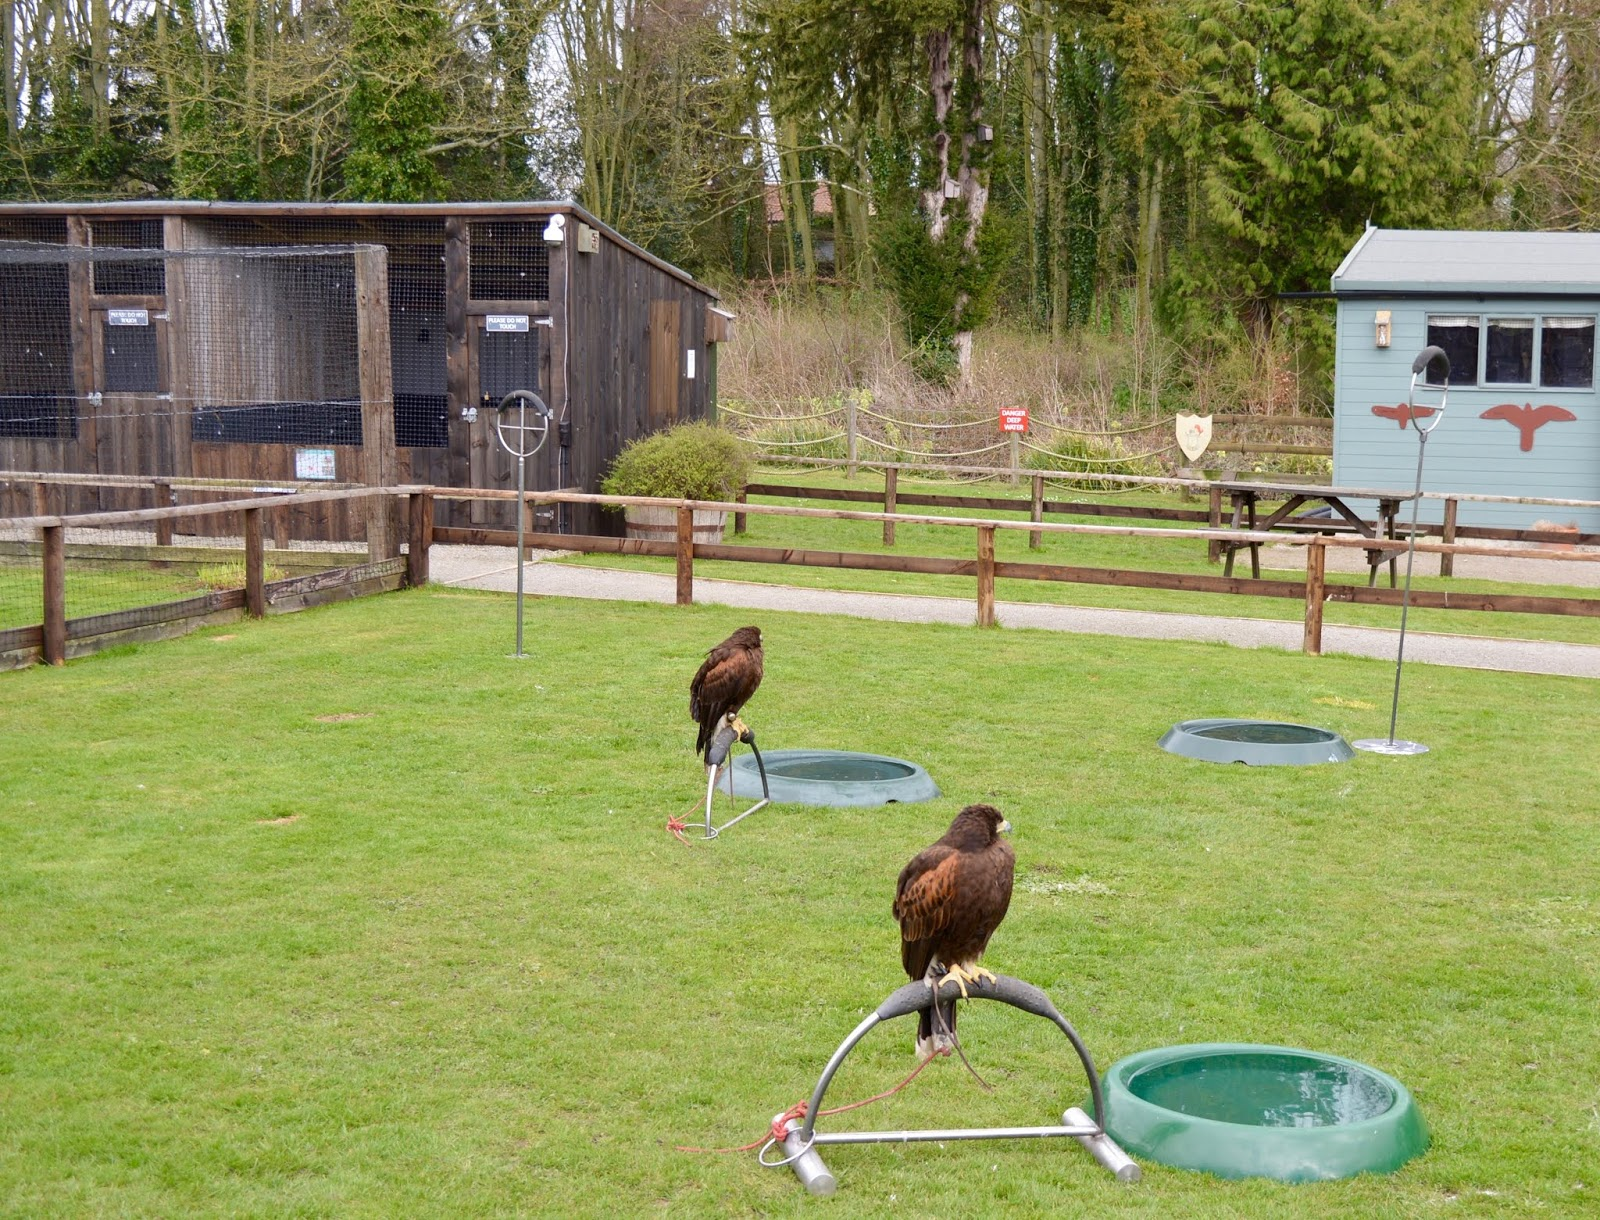 Sunday Lunch, Playgrounds & Birds of Prey at Walworth Castle, Darlington  - birds of prey